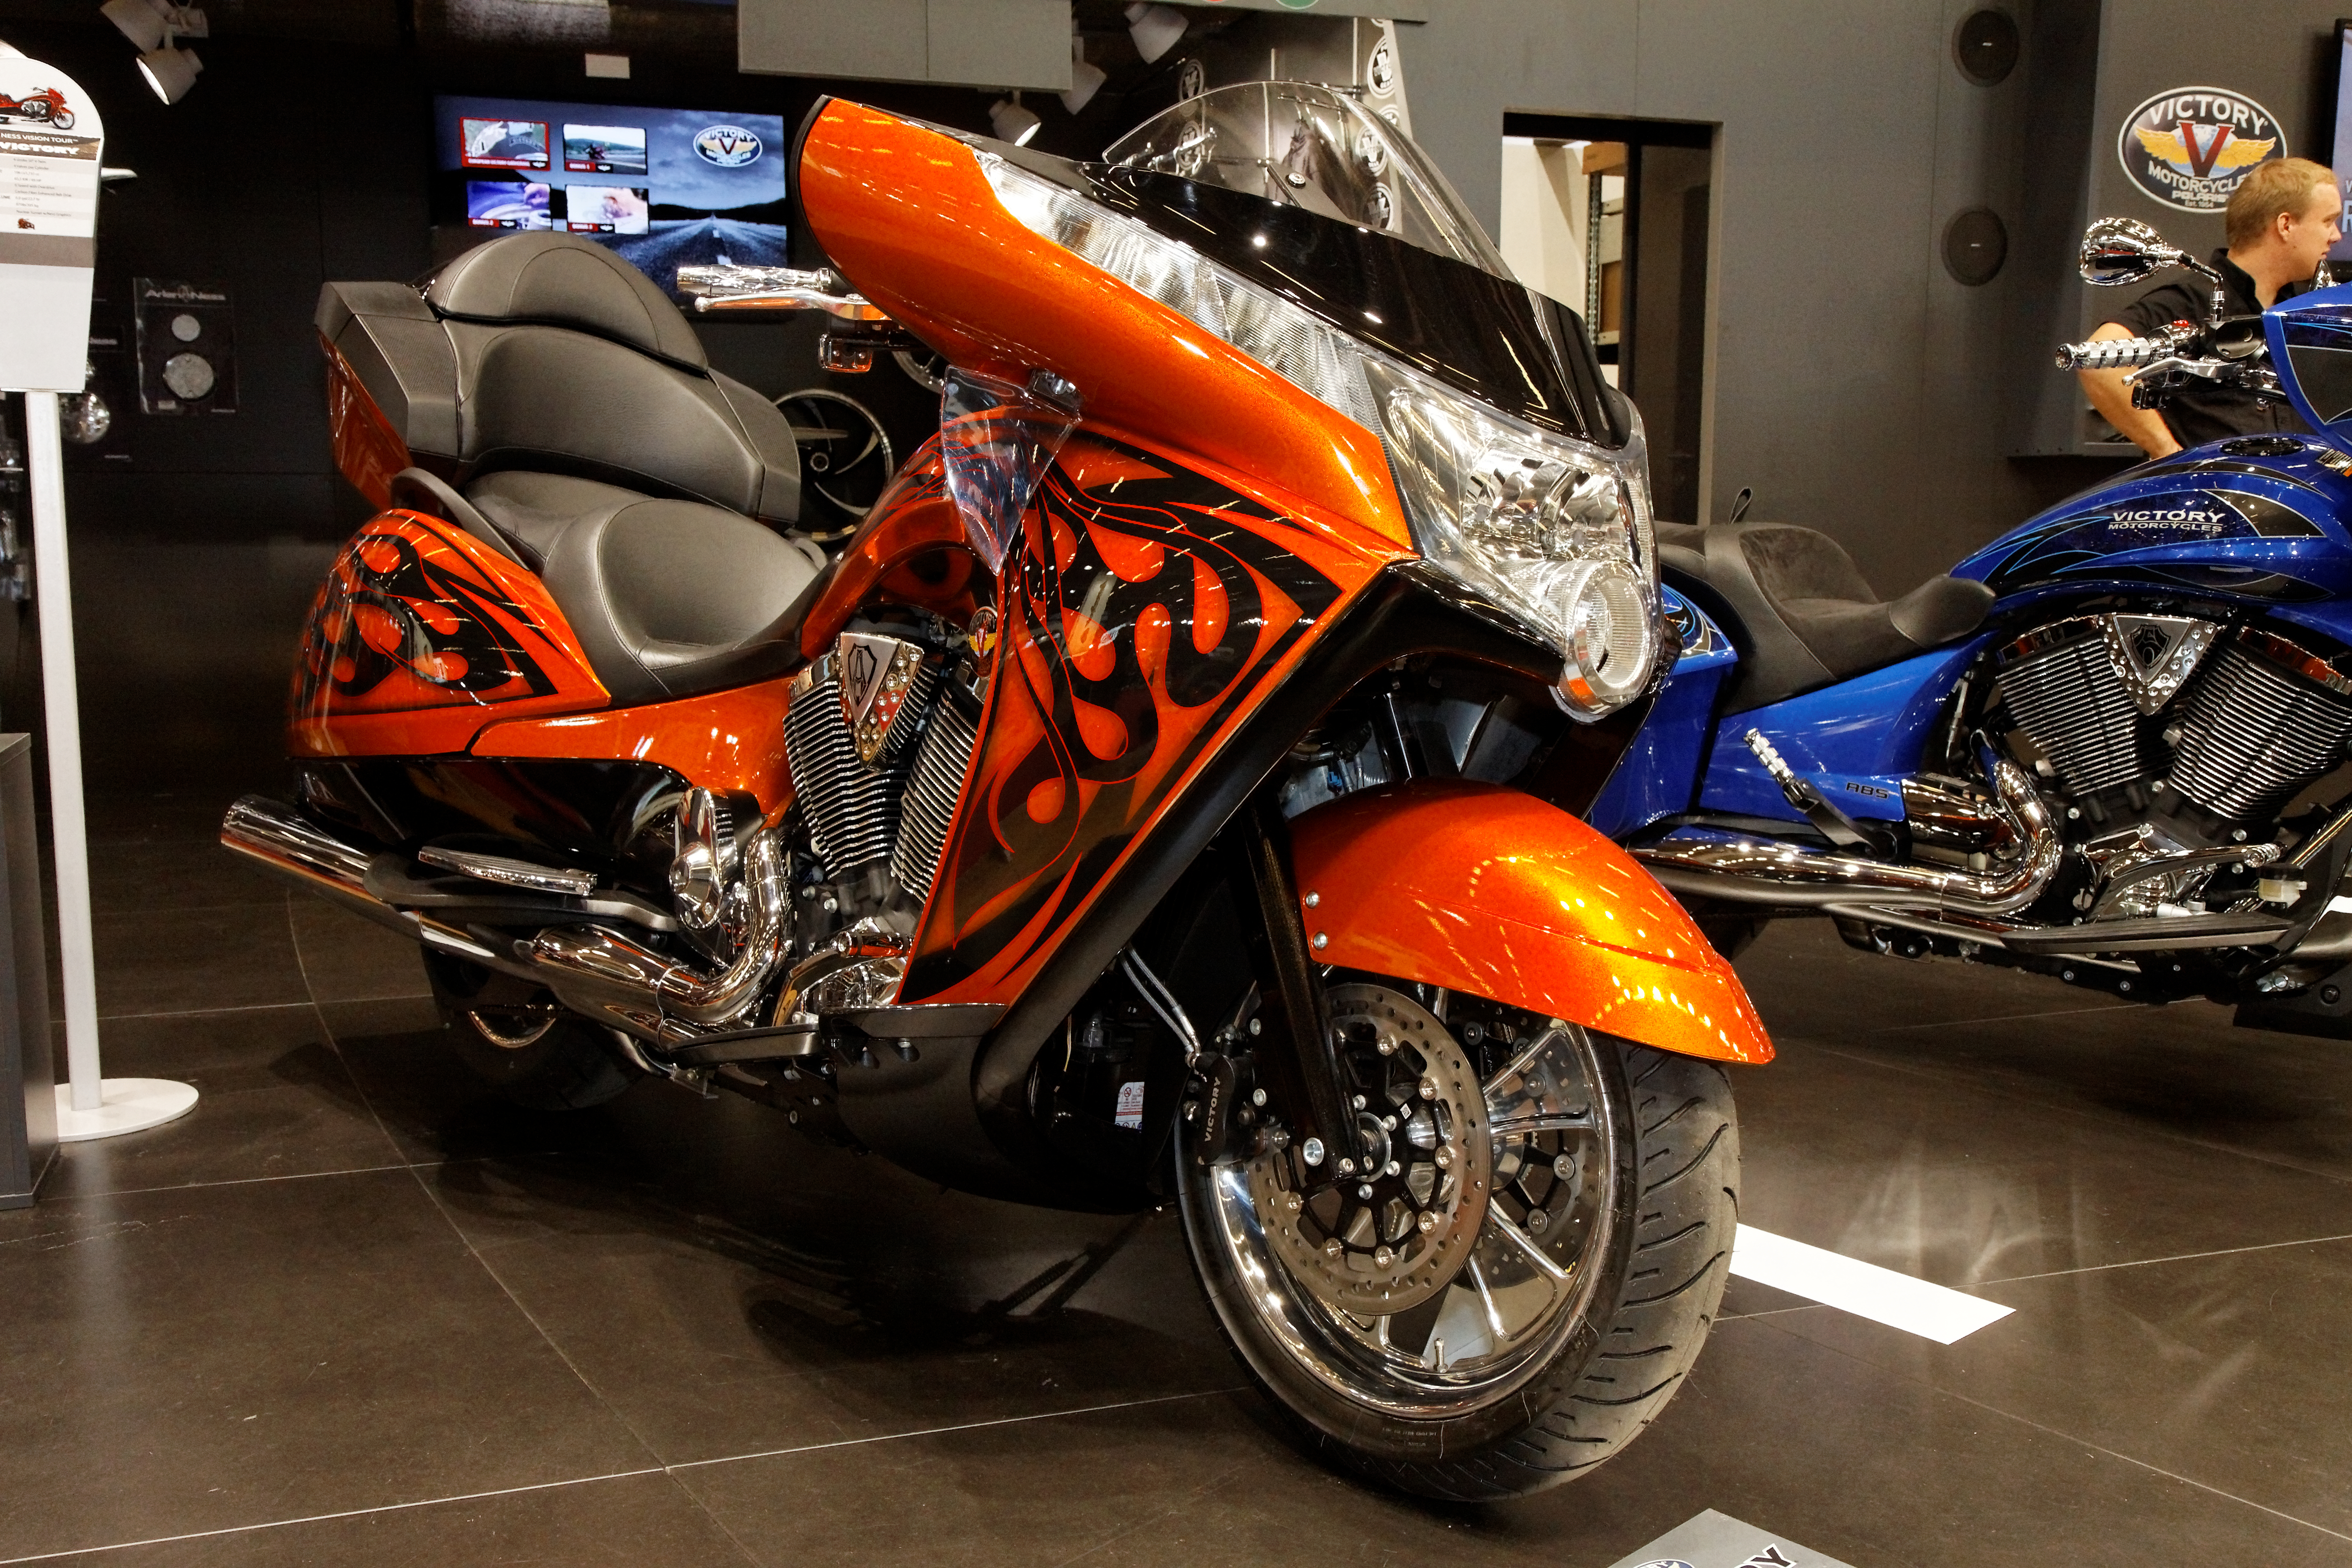 2011 Victory Arlen Ness Vision #1